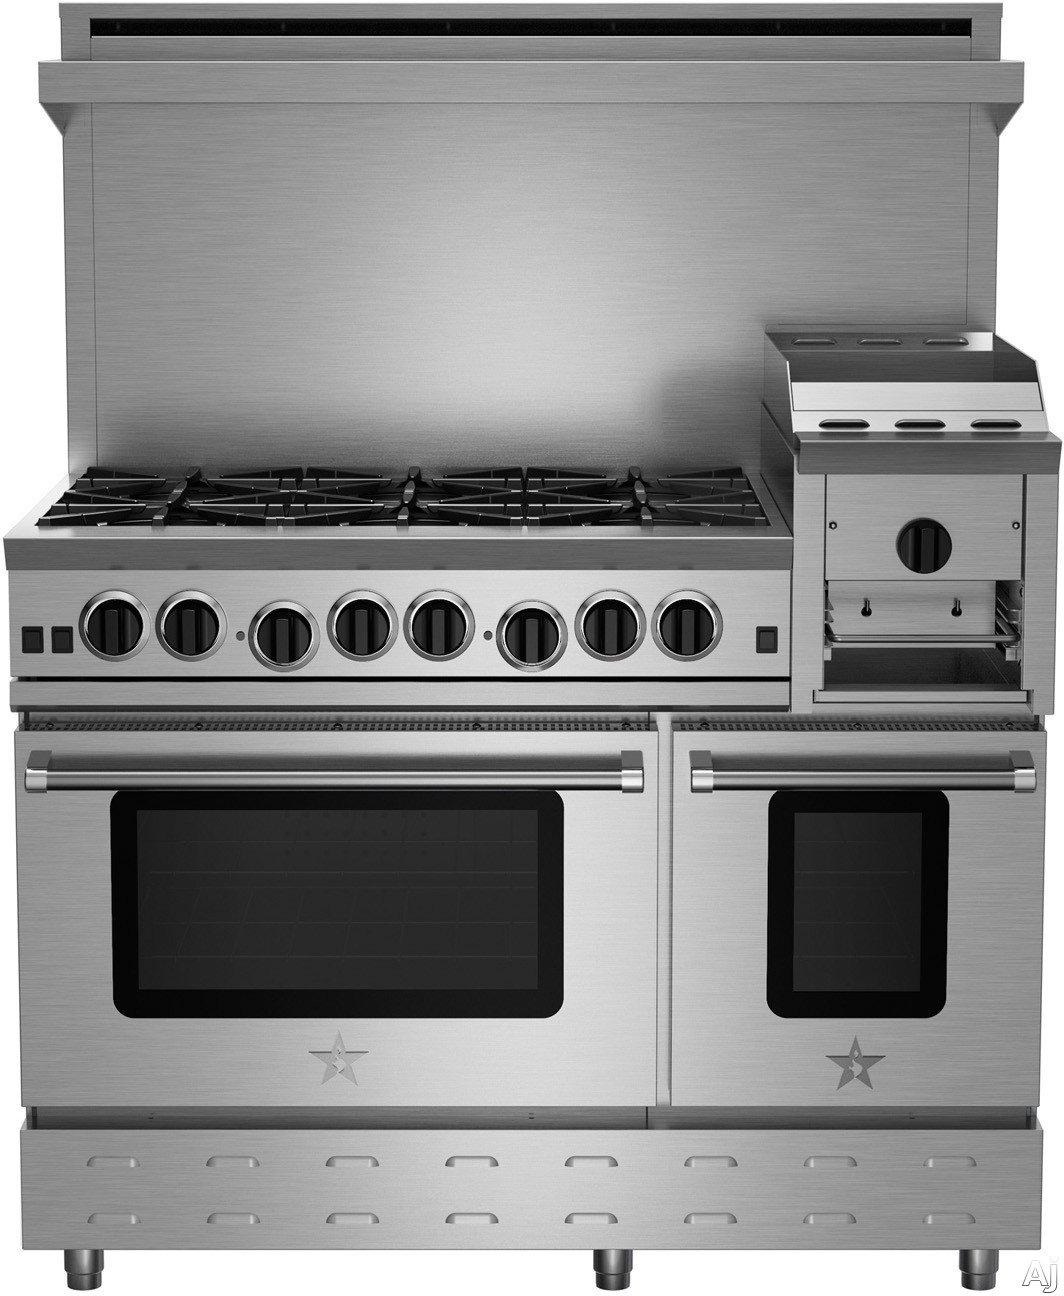 BlueStar Heritage Classic Series RNB486GHCV2 48 Inch Freestanding Gas Range with 6 Open Burners, 12 Inch Griddle/Broiler, UltraNova Burners, Precise Simmer Burner, 2 Convection Ovens, Gliding Oven Rack, 750 Color Options and Manual Clean RNB486GHCV2